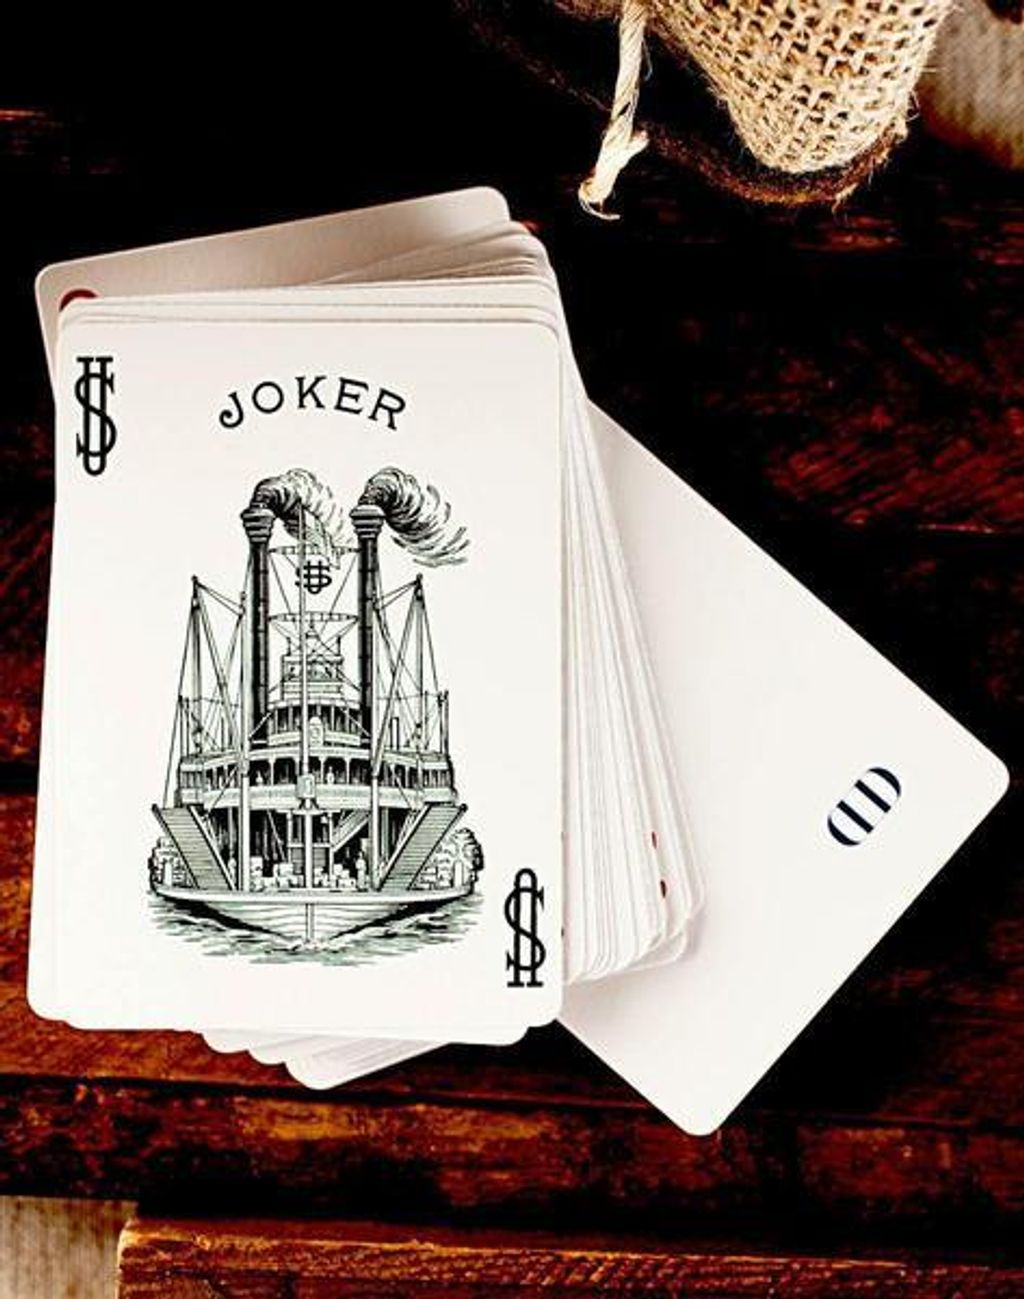 playing-cards-steamboat-999-5_grande.jpg